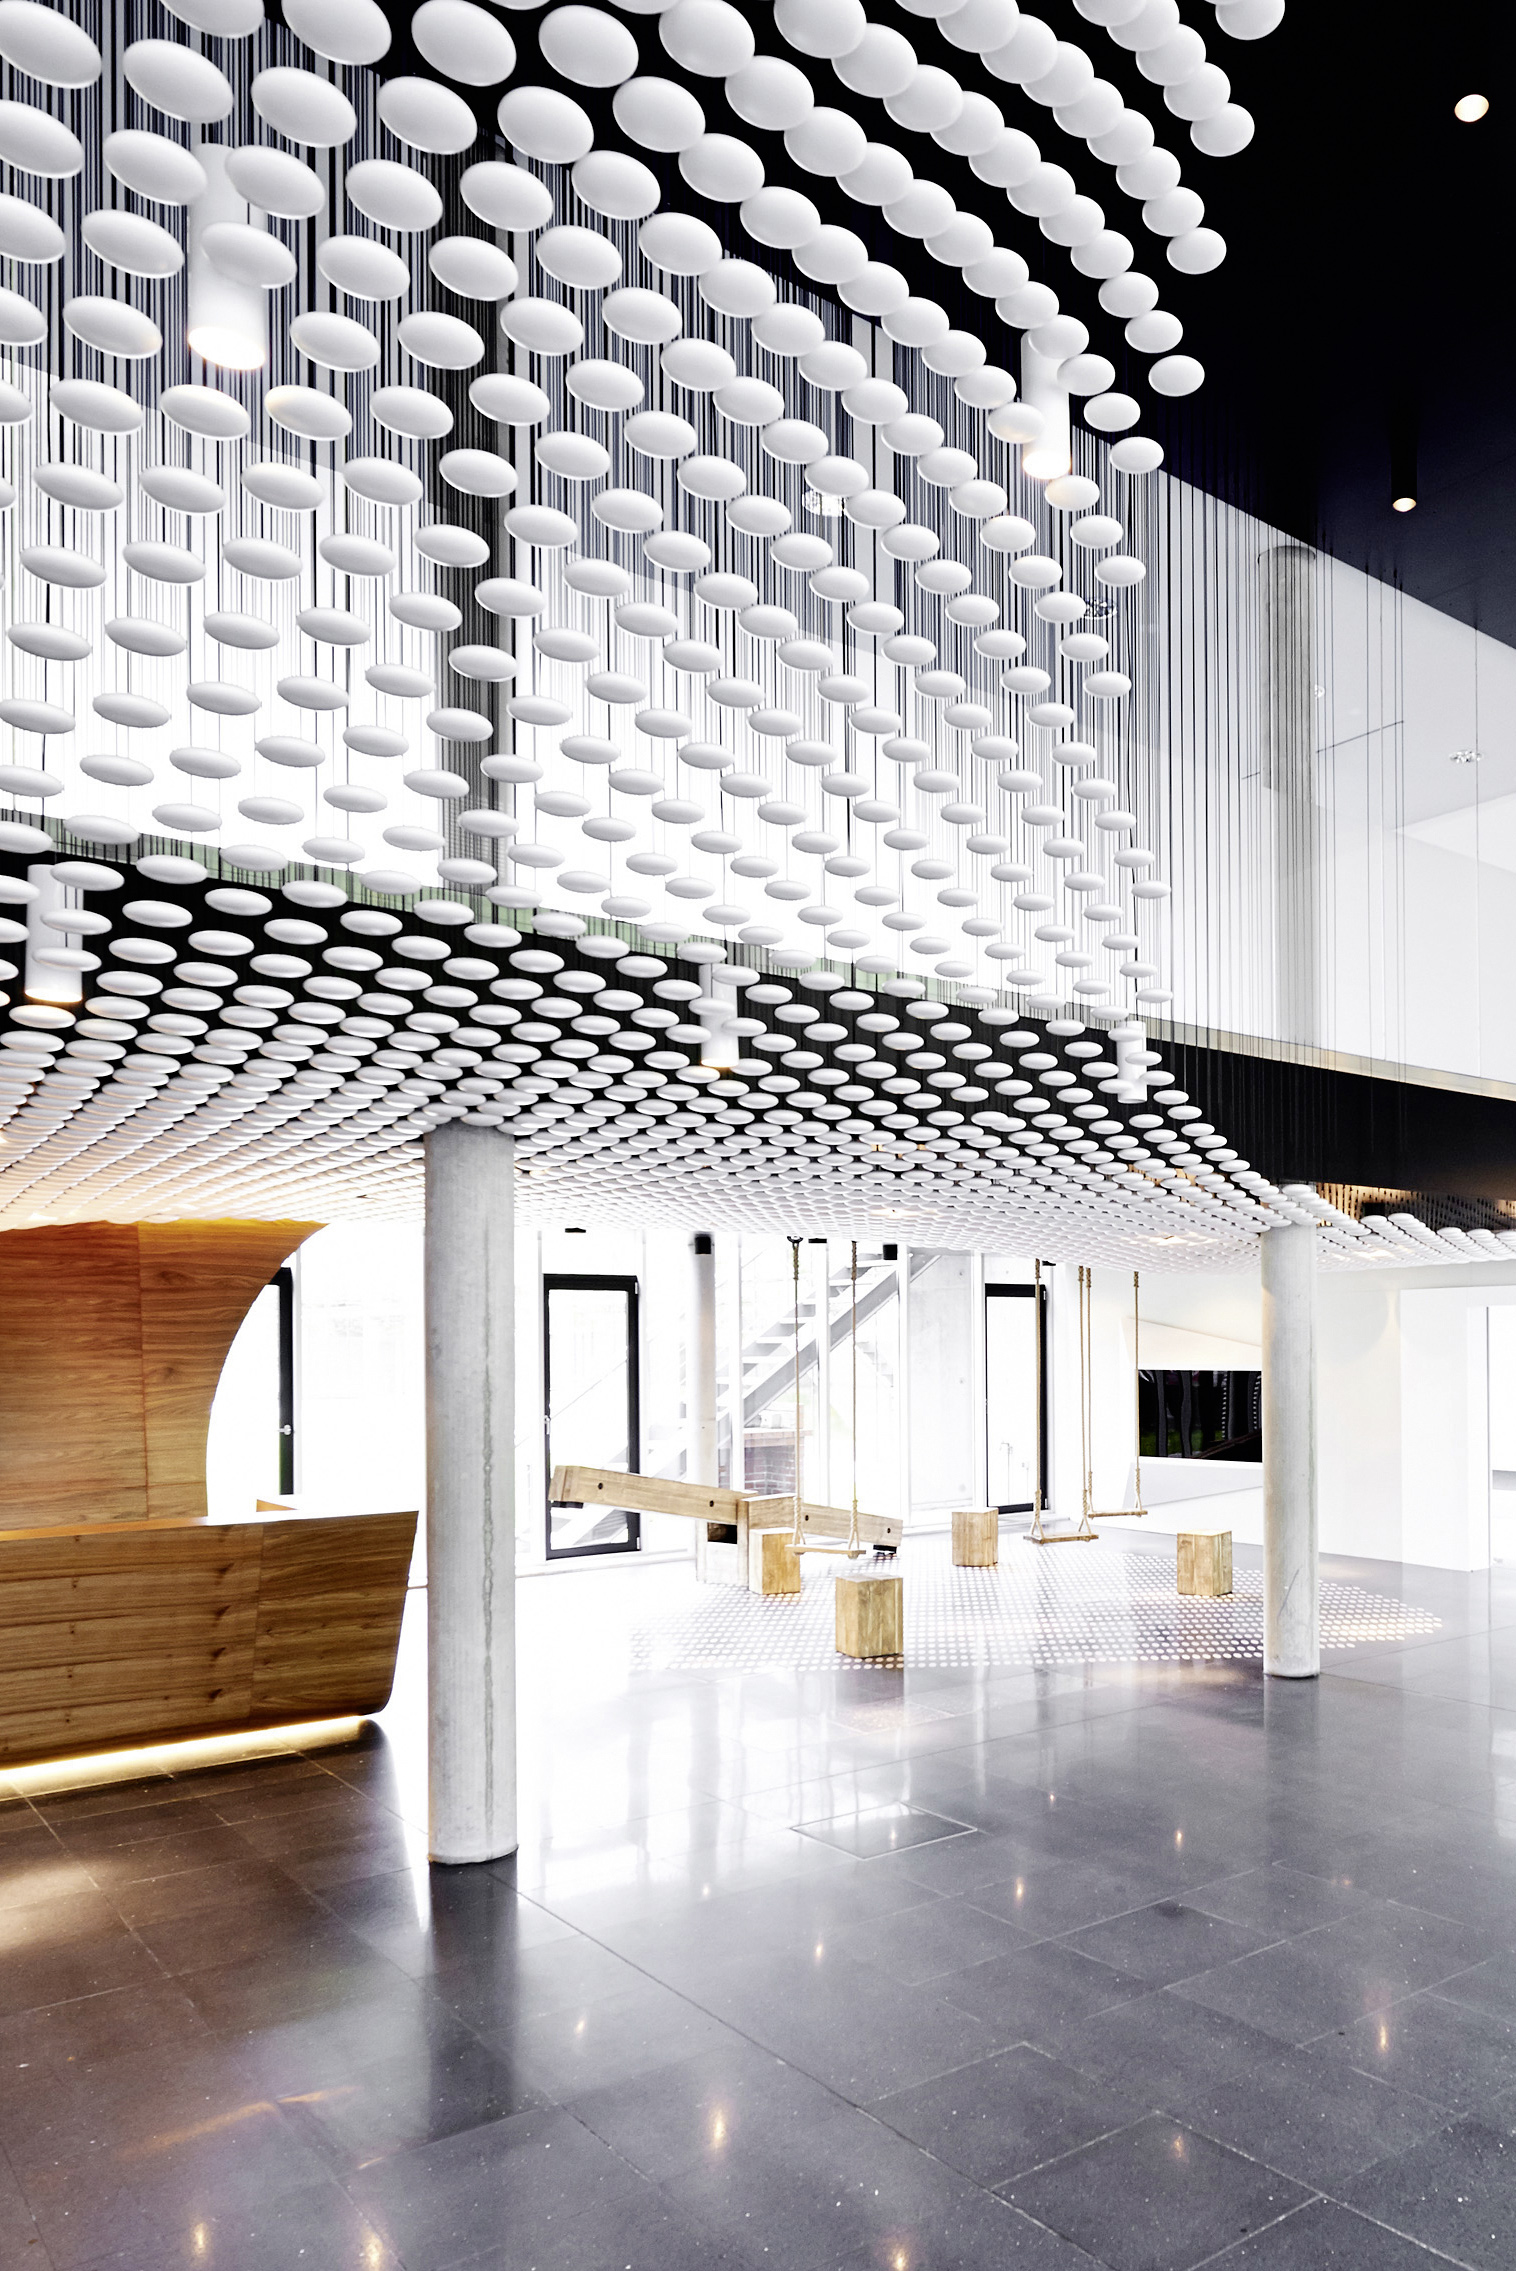 The brightly lit entrance stands natural wood in sharp contrast with dark tiled flooring and exposed concrete columns, below the clouds of white spheres.